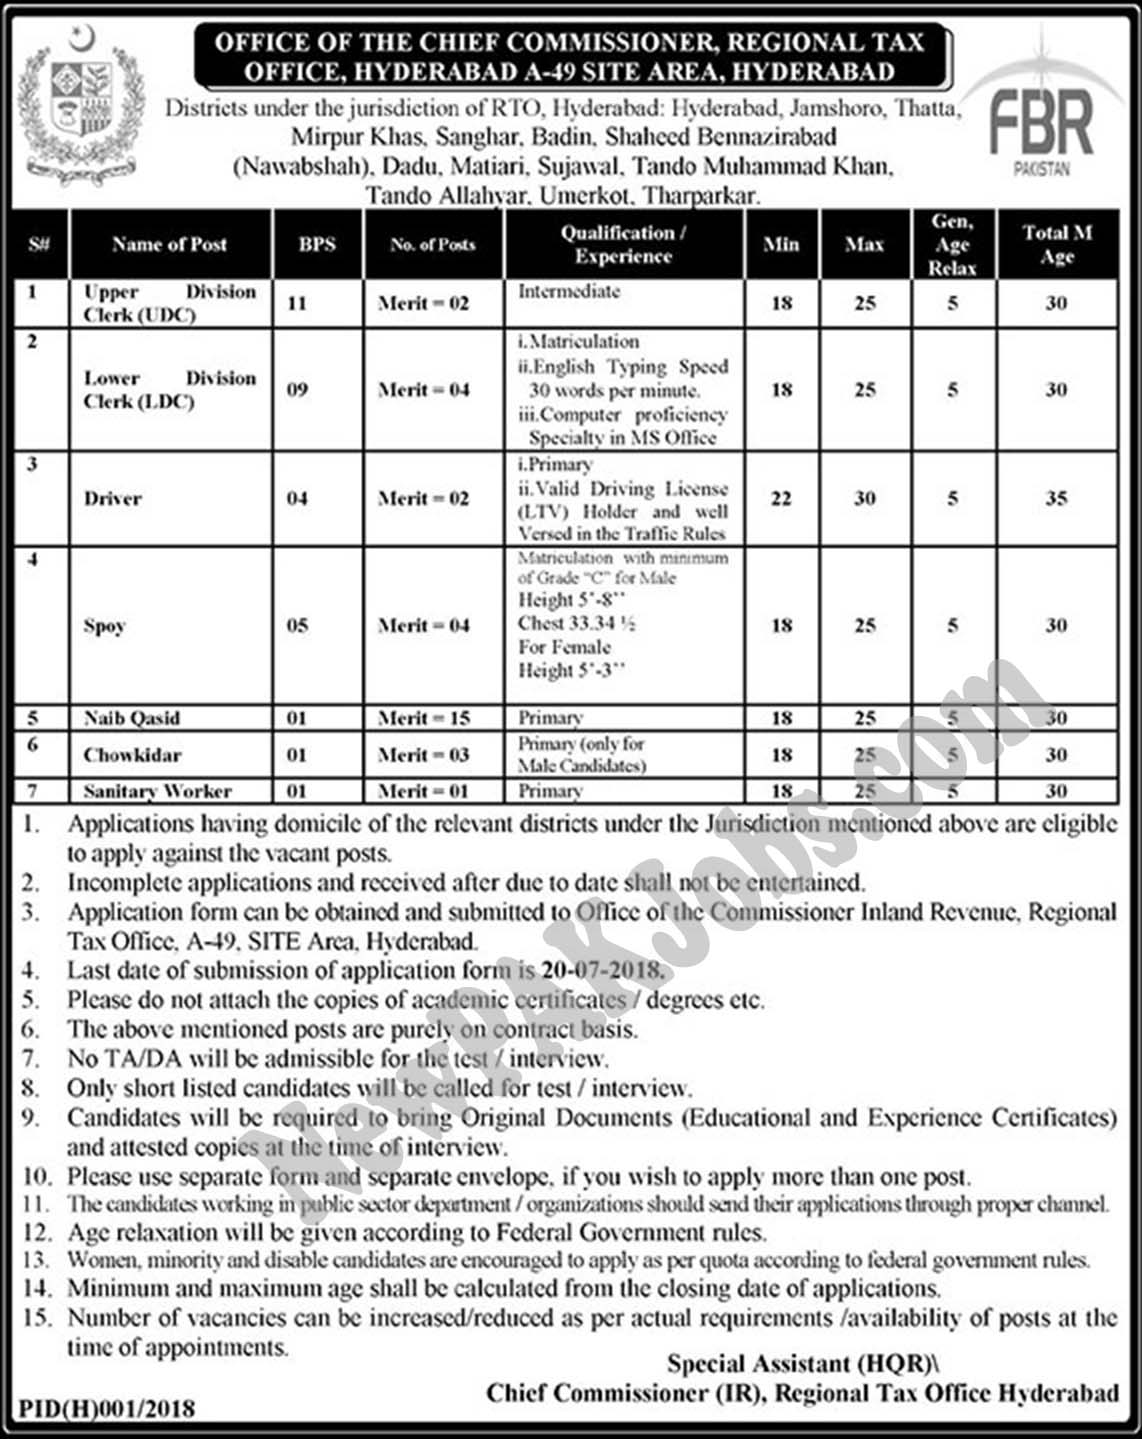 FBR Jobs July 2018 The Chief Commissioner Regional Tax Office